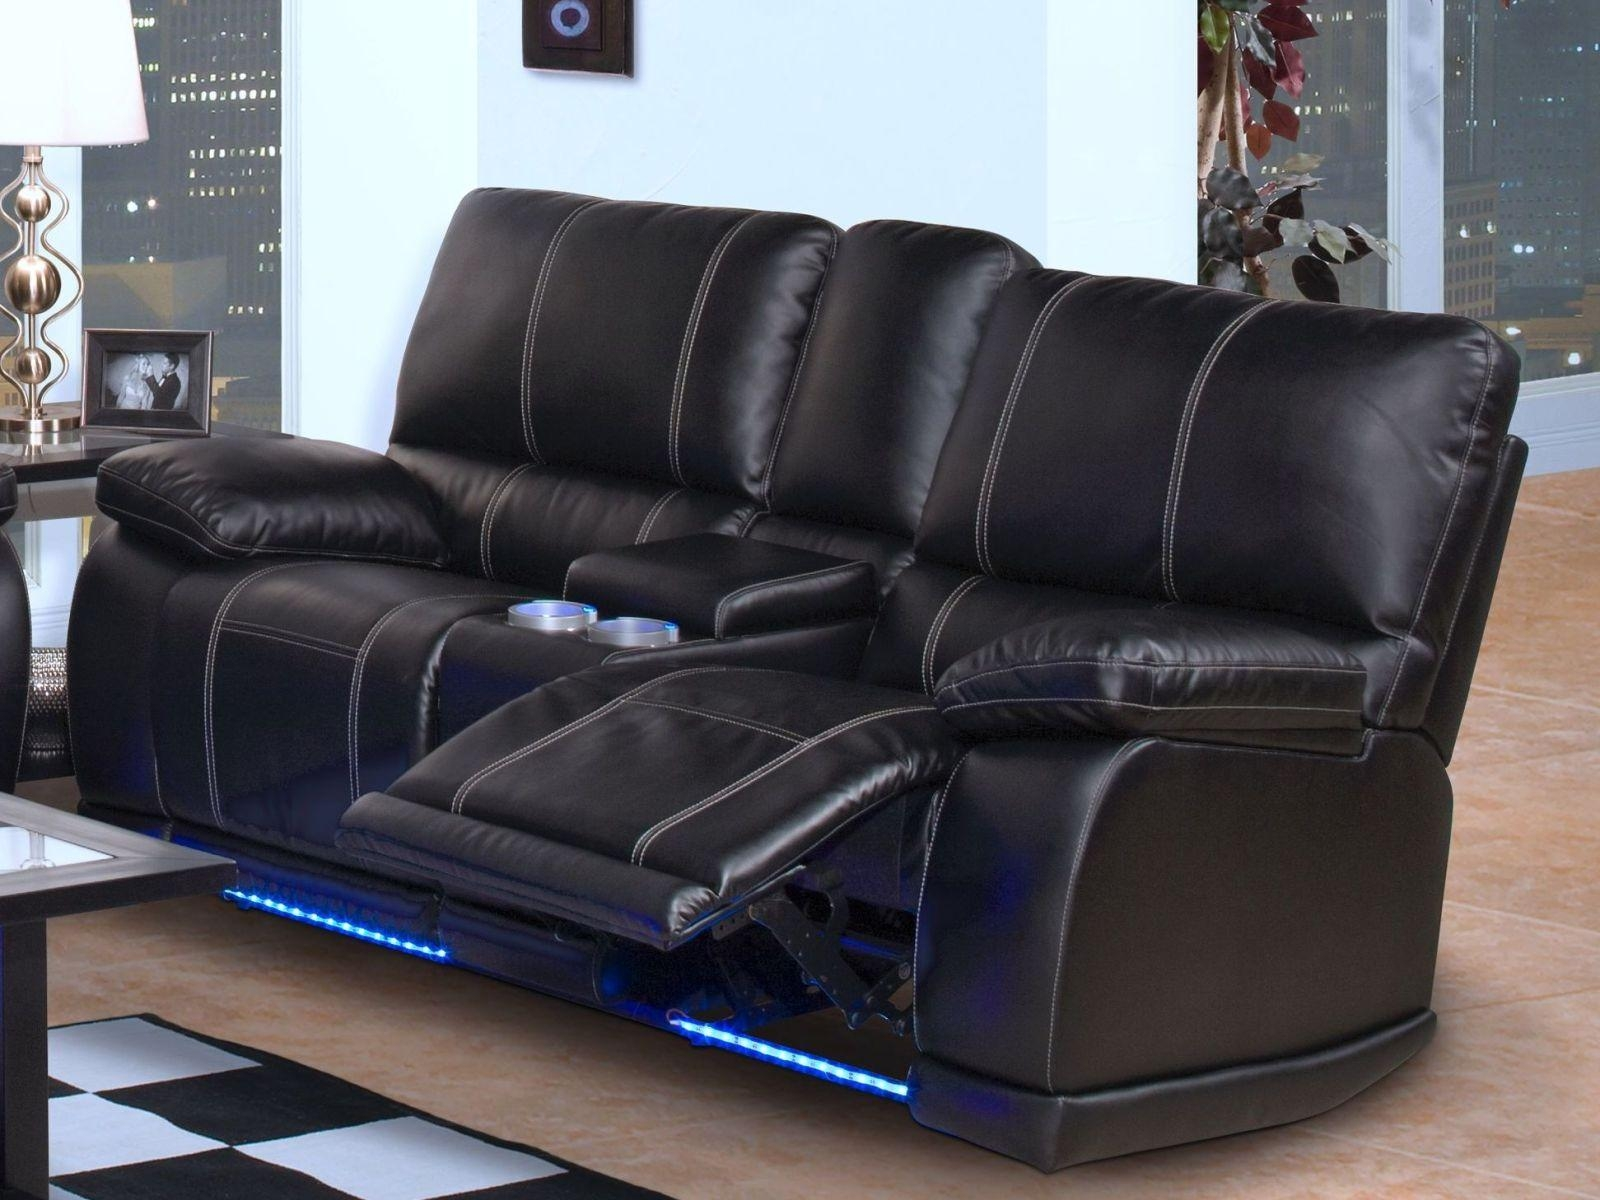 ▻ Sofa : 39 Black Bonded Leather Reclining Sofa Console Storage Pertaining To Sofas With Cup Holders (Image 1 of 20)